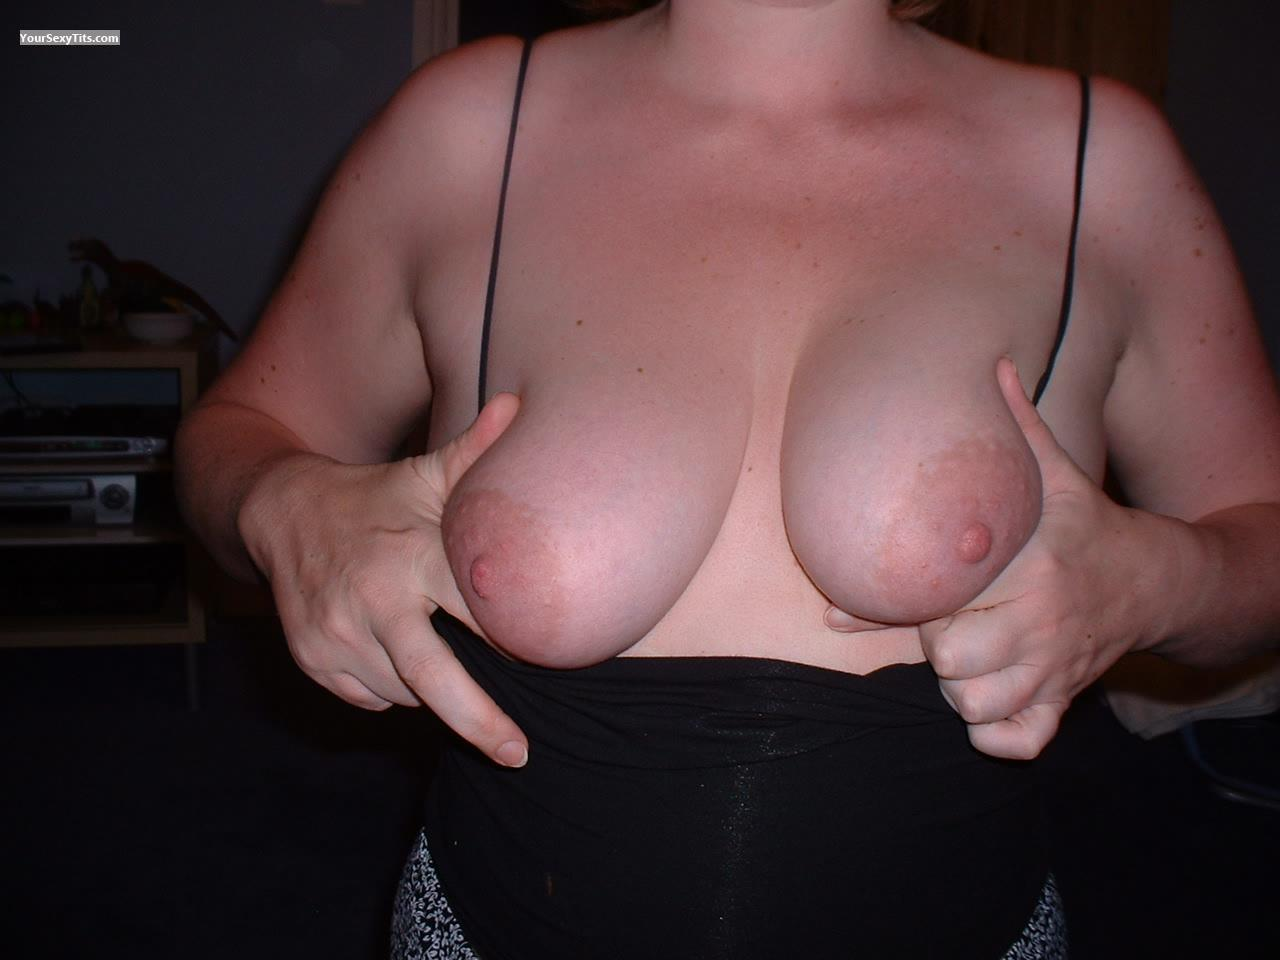 Tit Flash: Medium Tits - Kaz from United Kingdom